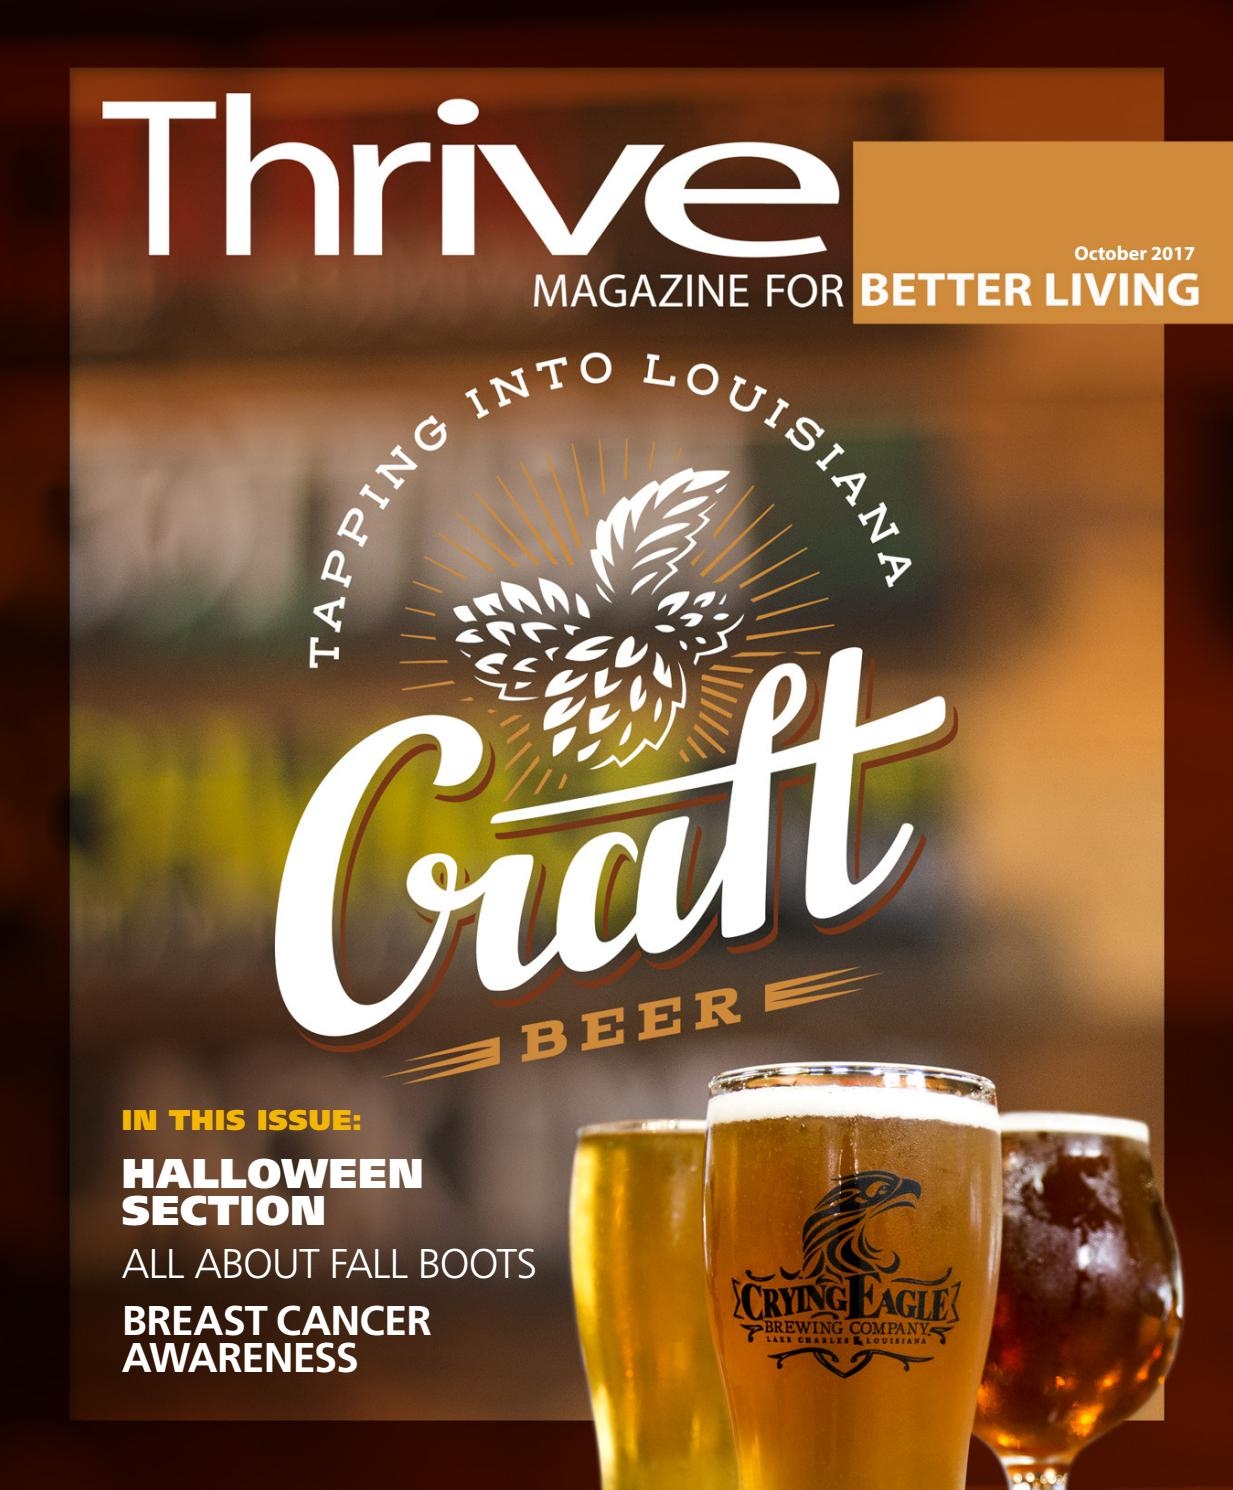 bc8905f03140f Thrive October 2017 Issue by Thrive Magazine - issuu